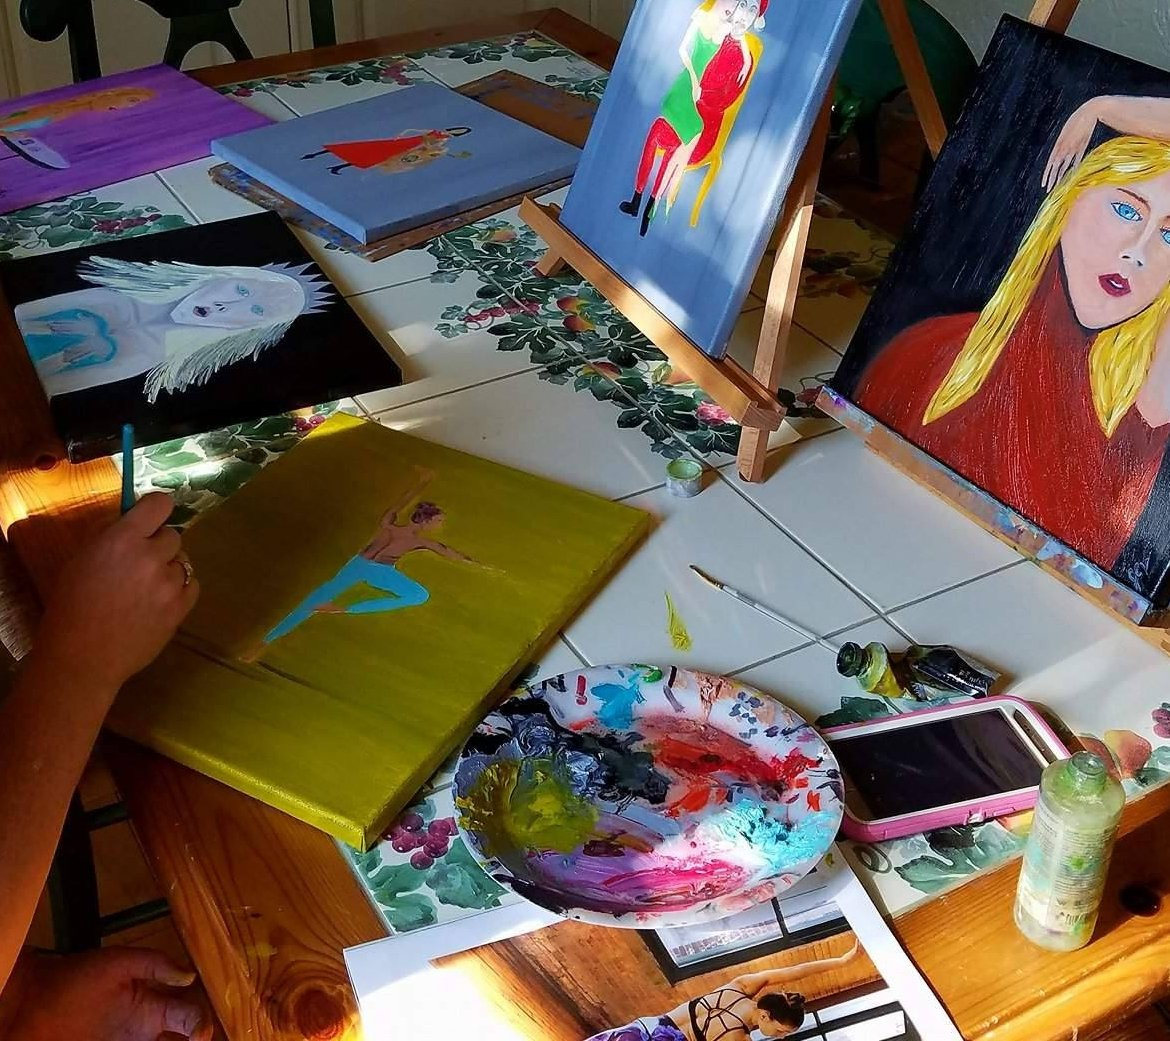 #MondayMotivation take time to be you...I am an #artist  #artisttwitter #oilpainting #JcvCreates  #illustration for #license <br>http://pic.twitter.com/33wFtsnuZF